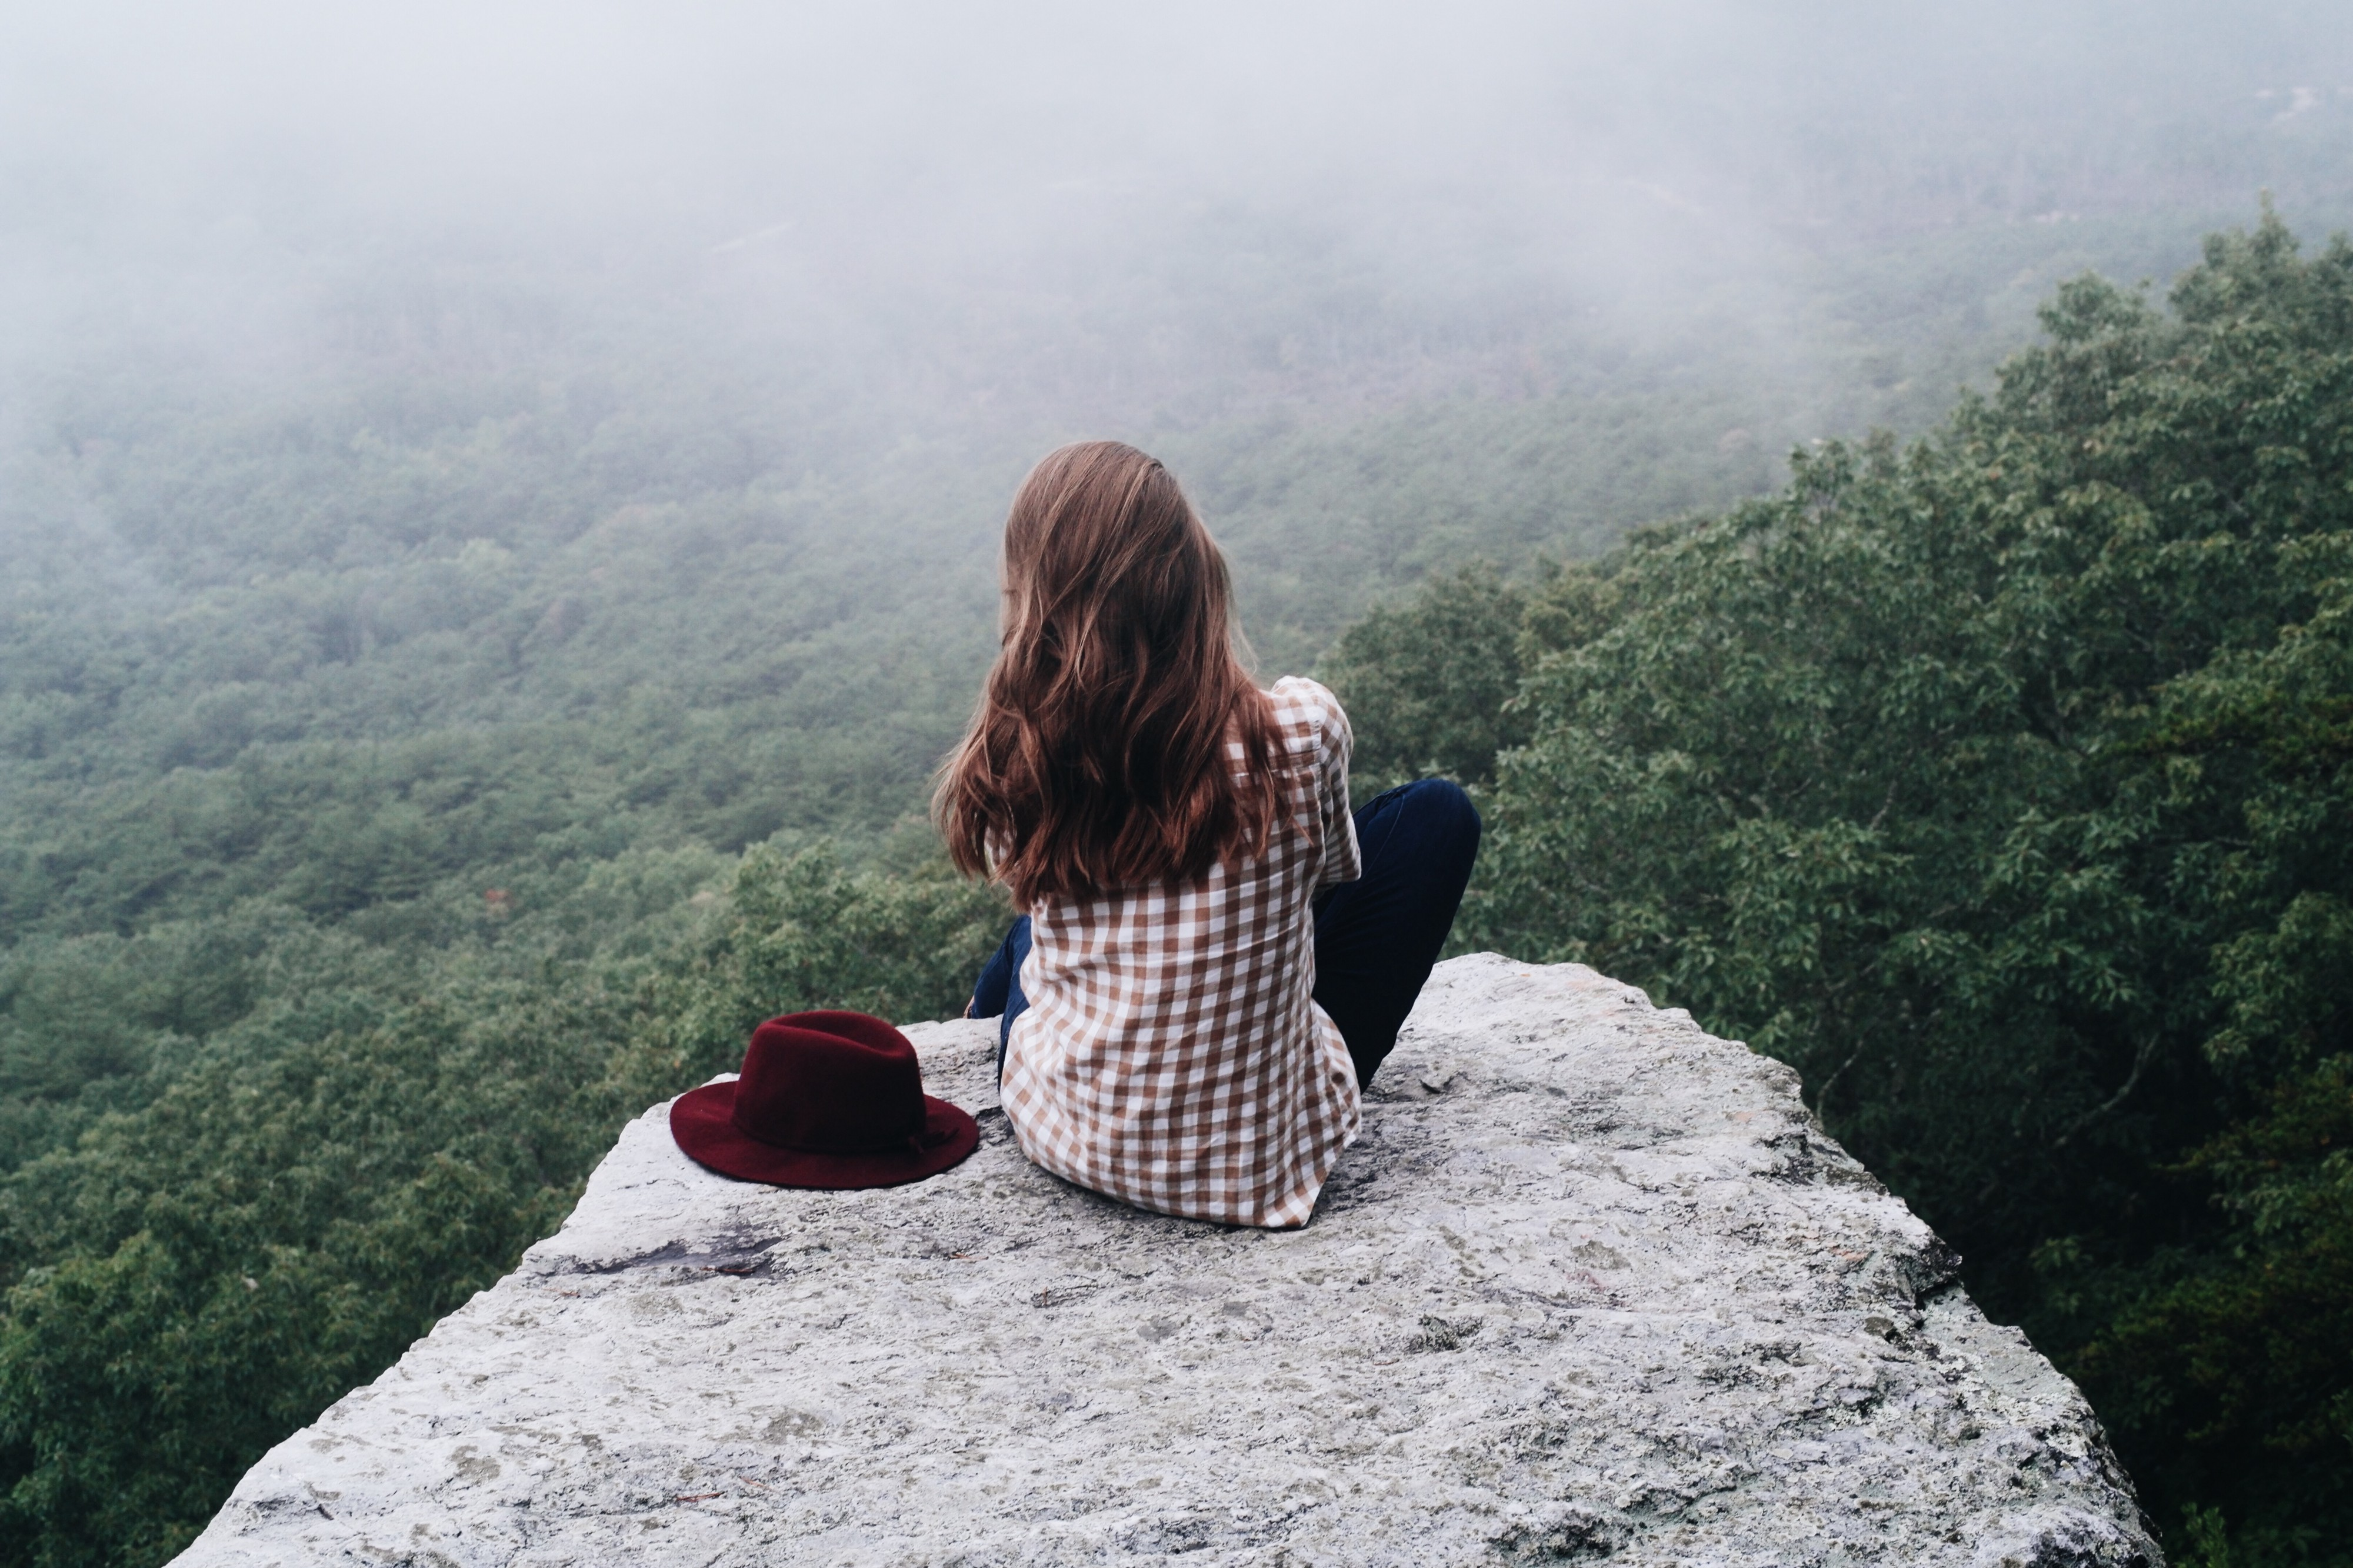 Woman sitting on a rock overlooking a forest.